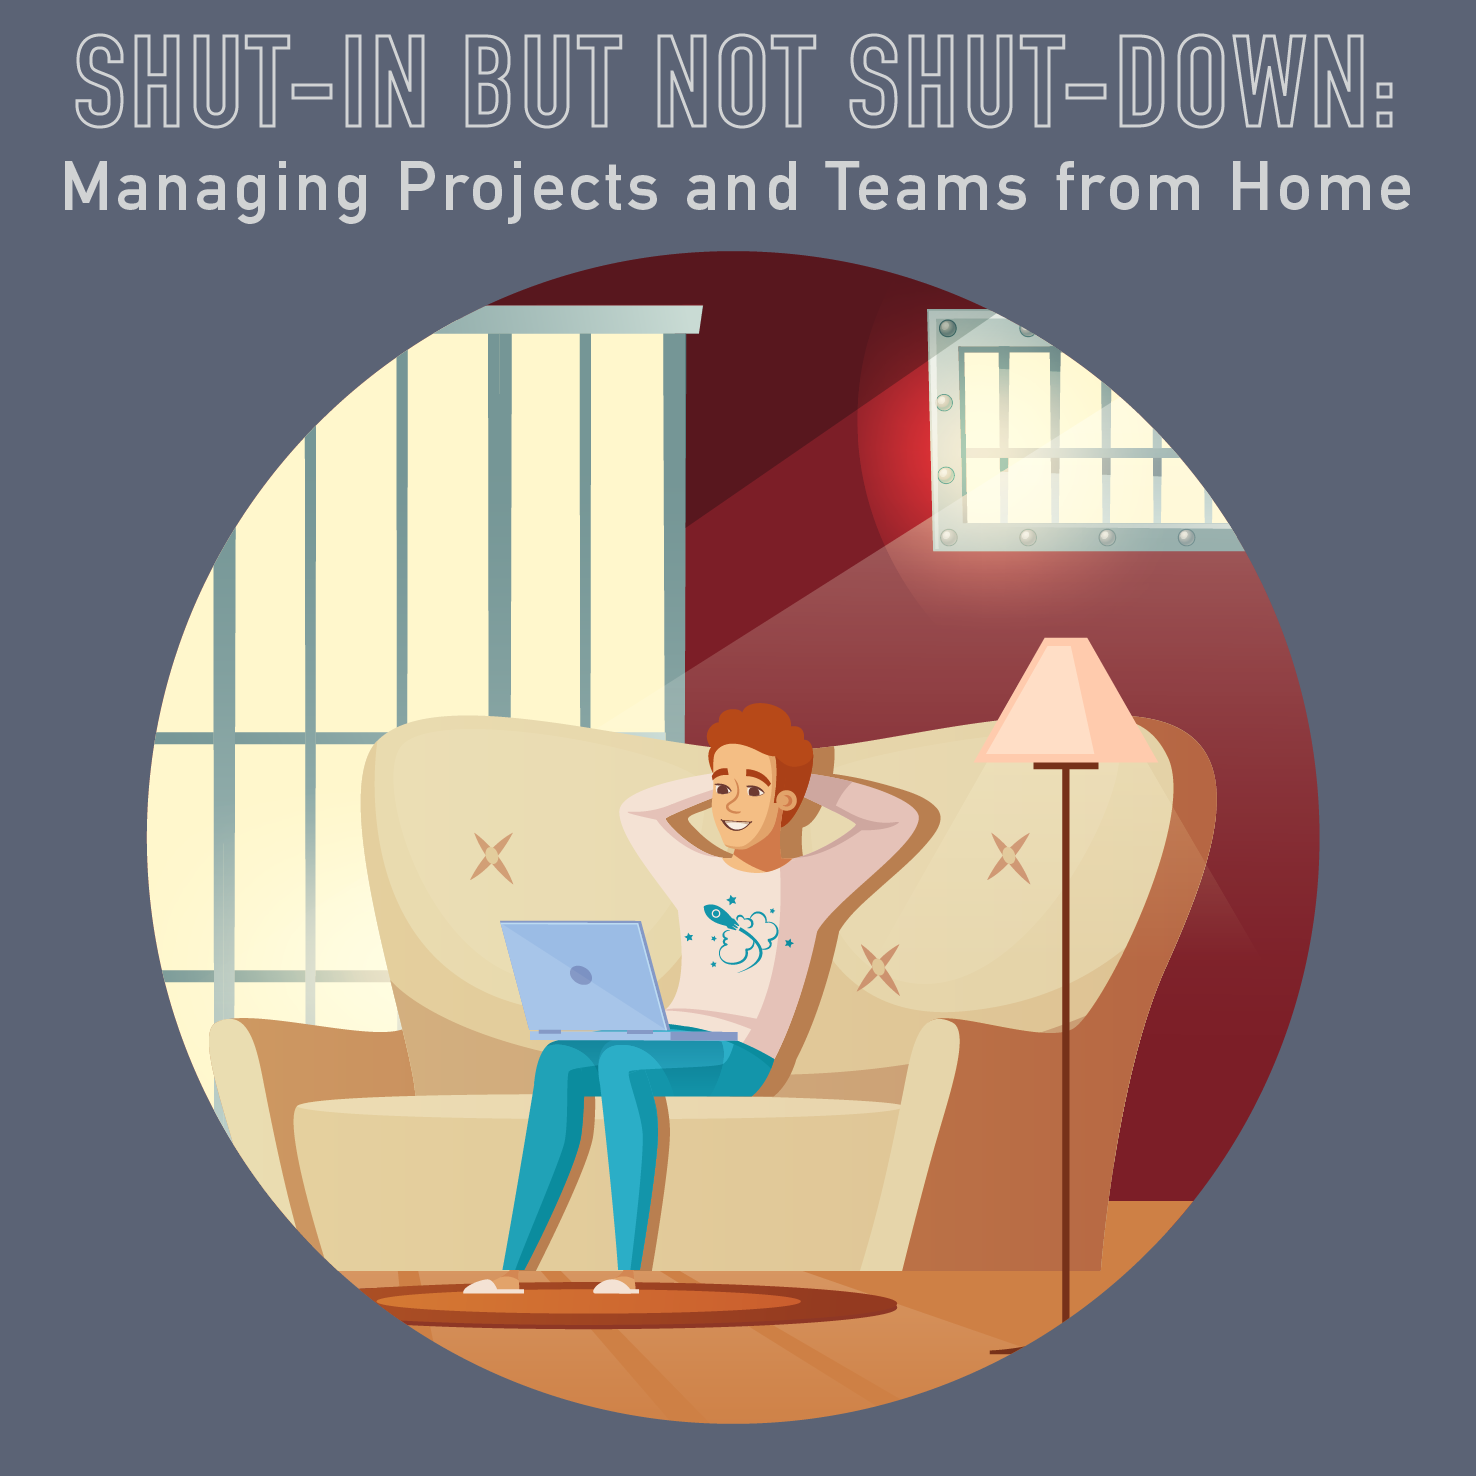 058 – Shut-in but not Shut-down: Managing Projects and Teams from Home